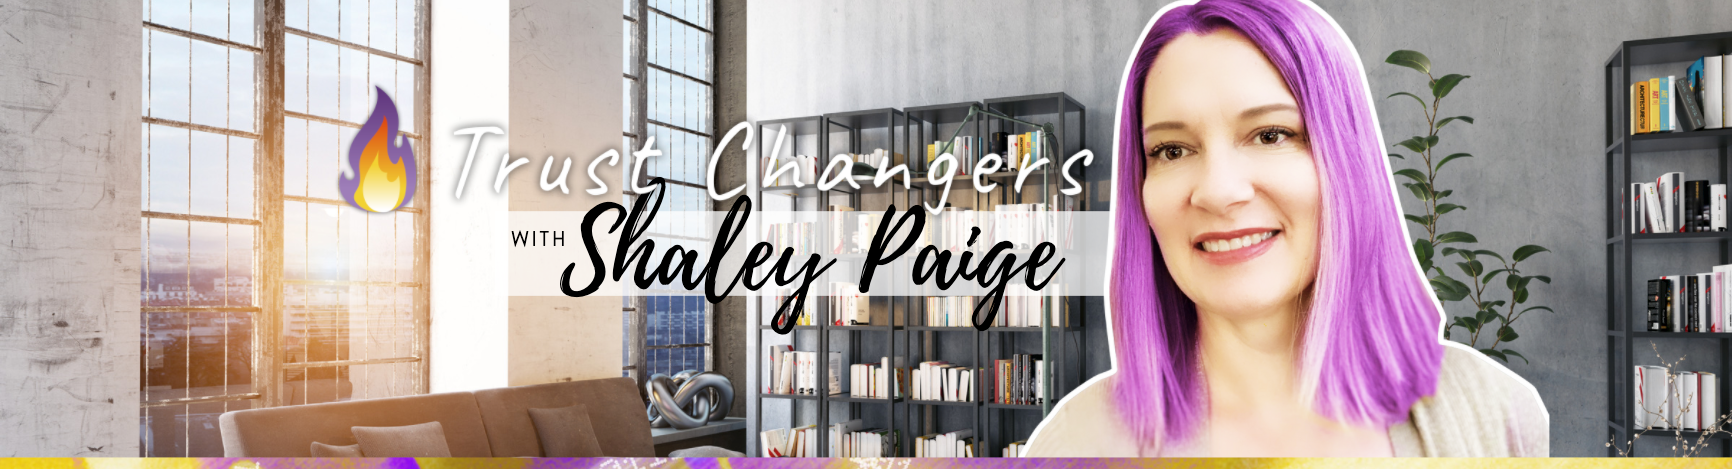 Trust Changers with Shaley Paige